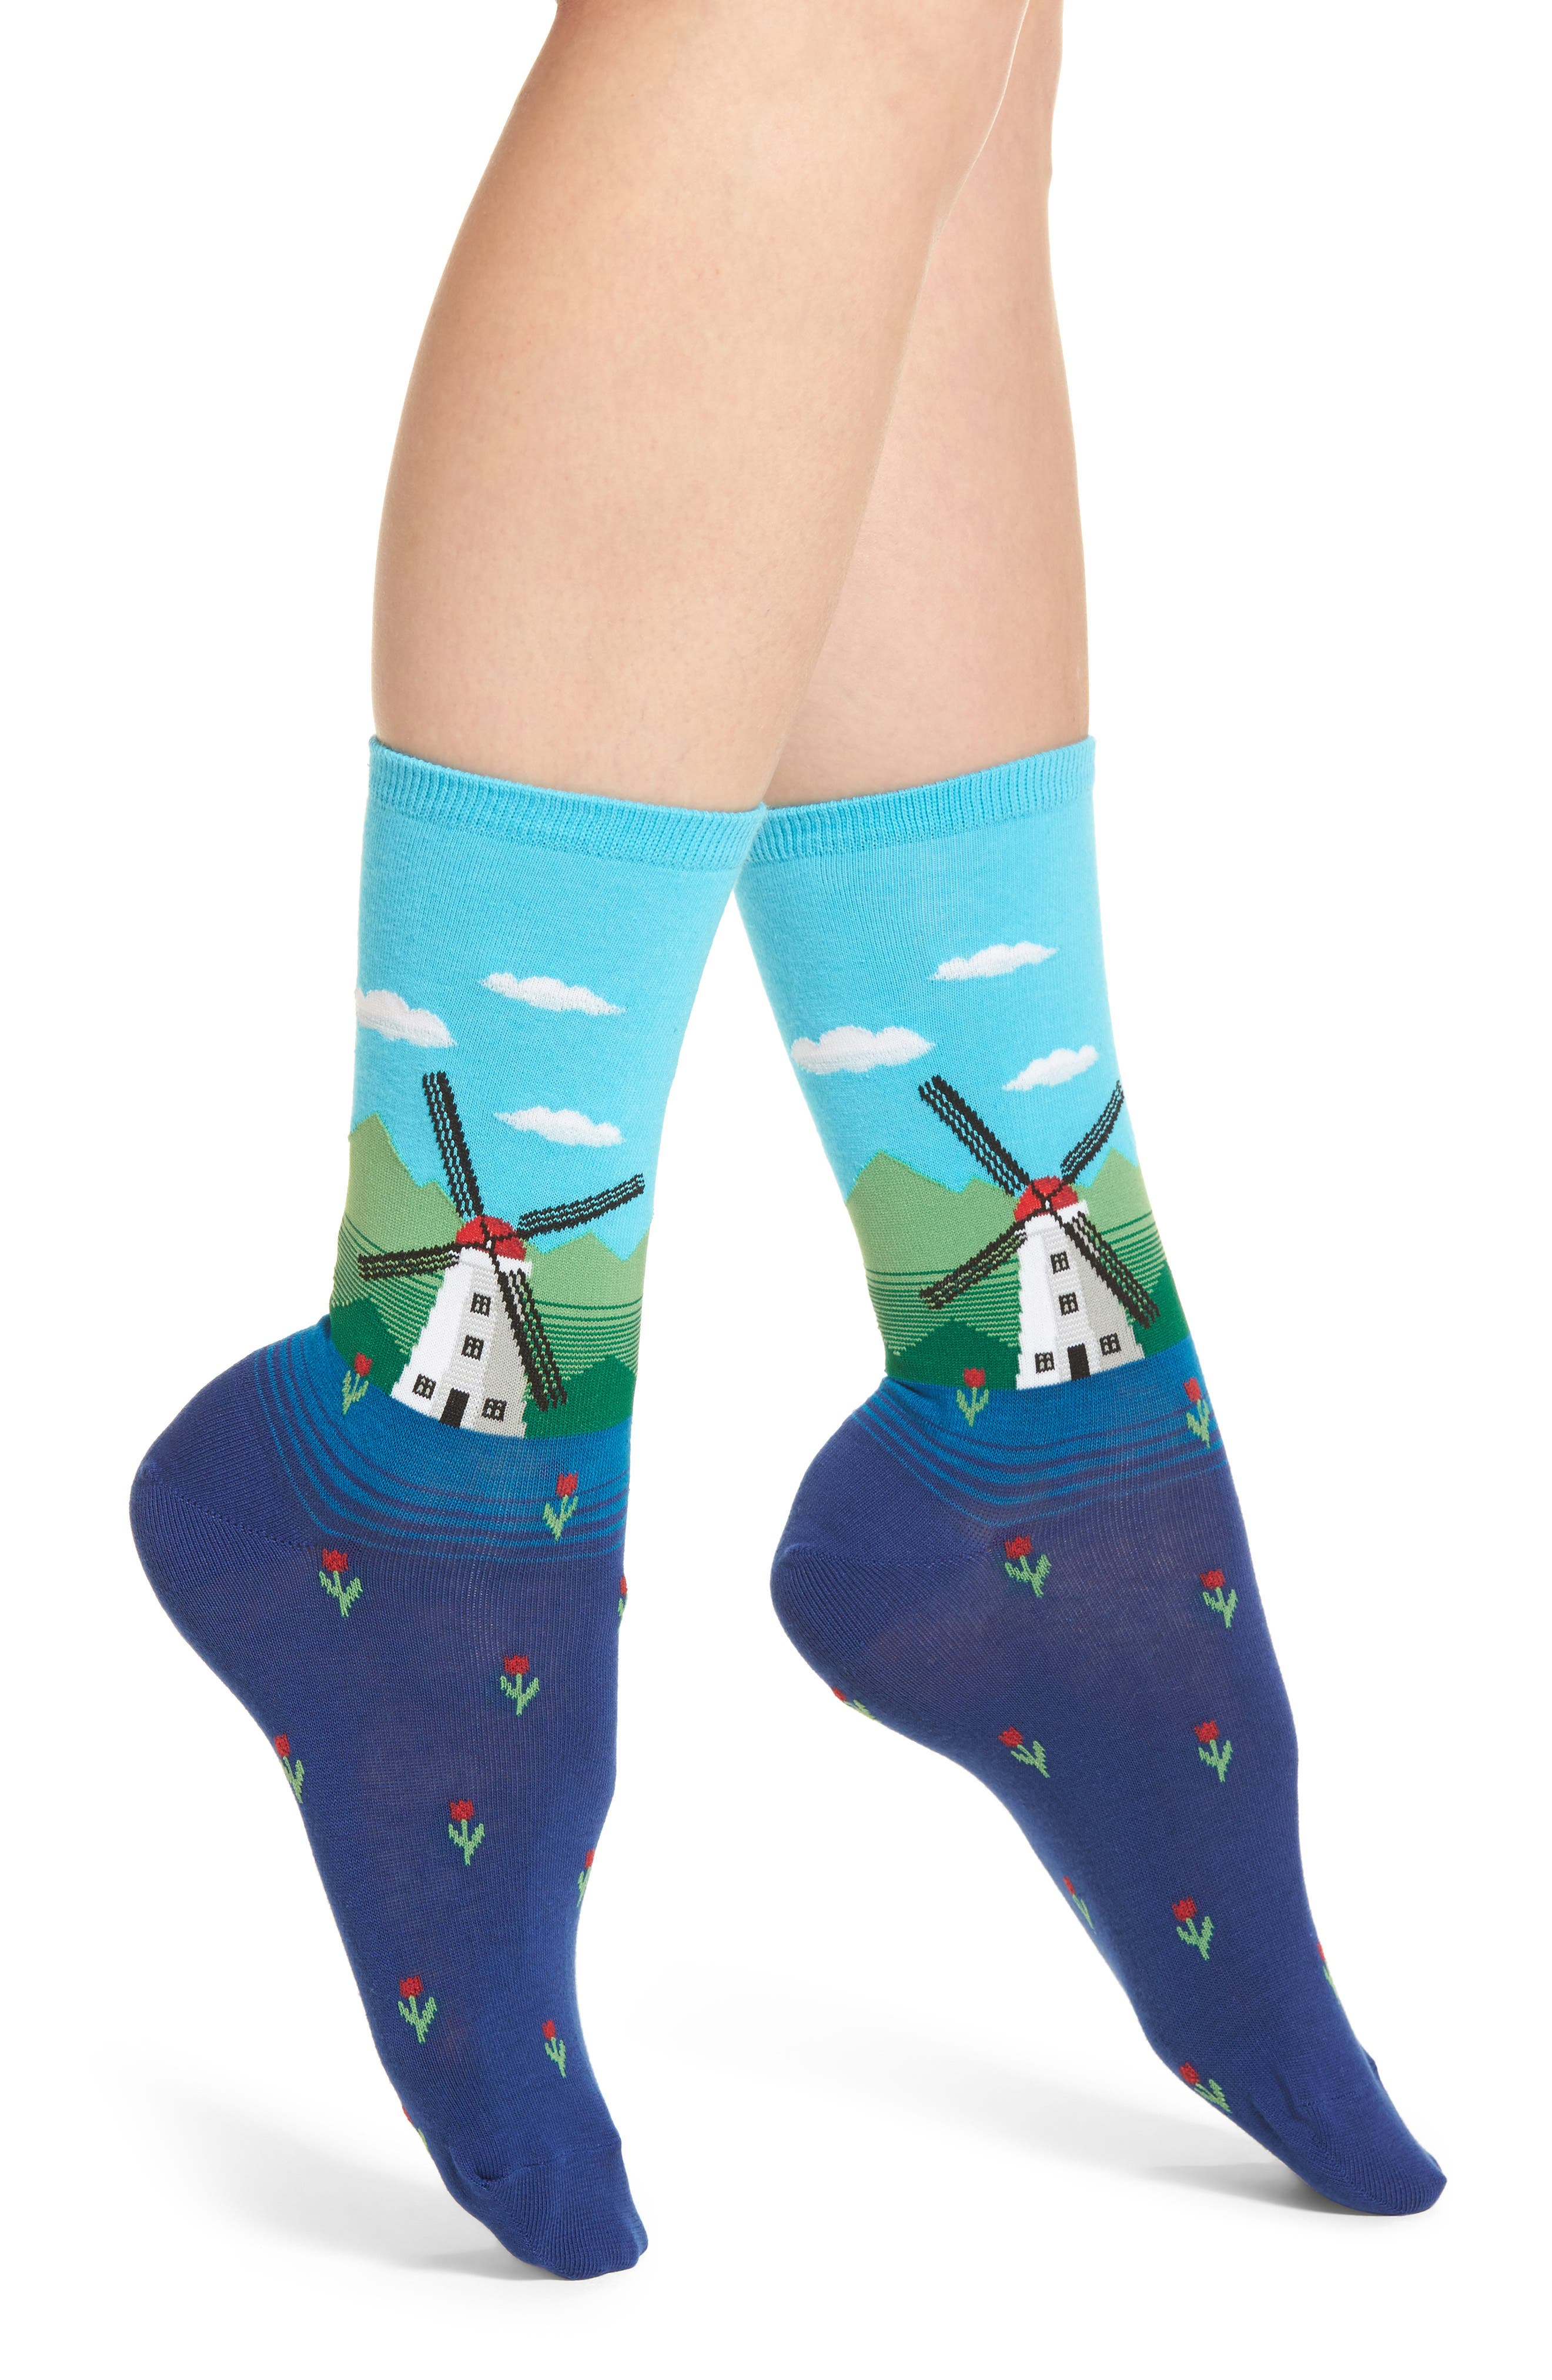 Windmill Crew Socks,                         Main,                         color, Light Blue